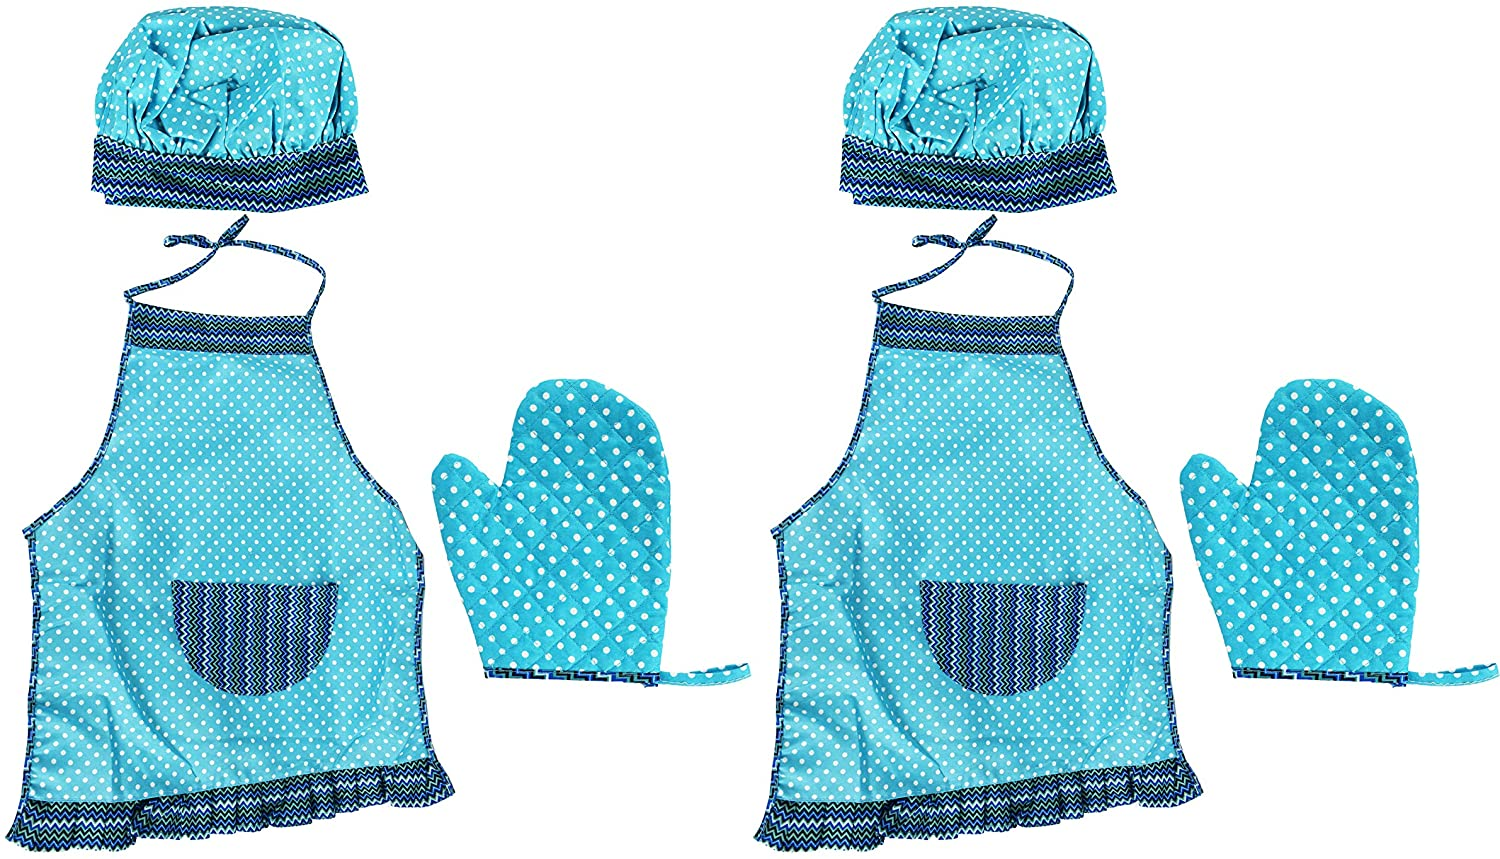 Set of 2 Children's Chef Outfits! Apron, Hat, and Oven Mitt! Perfect for Dressup and Parties! (2 Aprons, Blue Print)